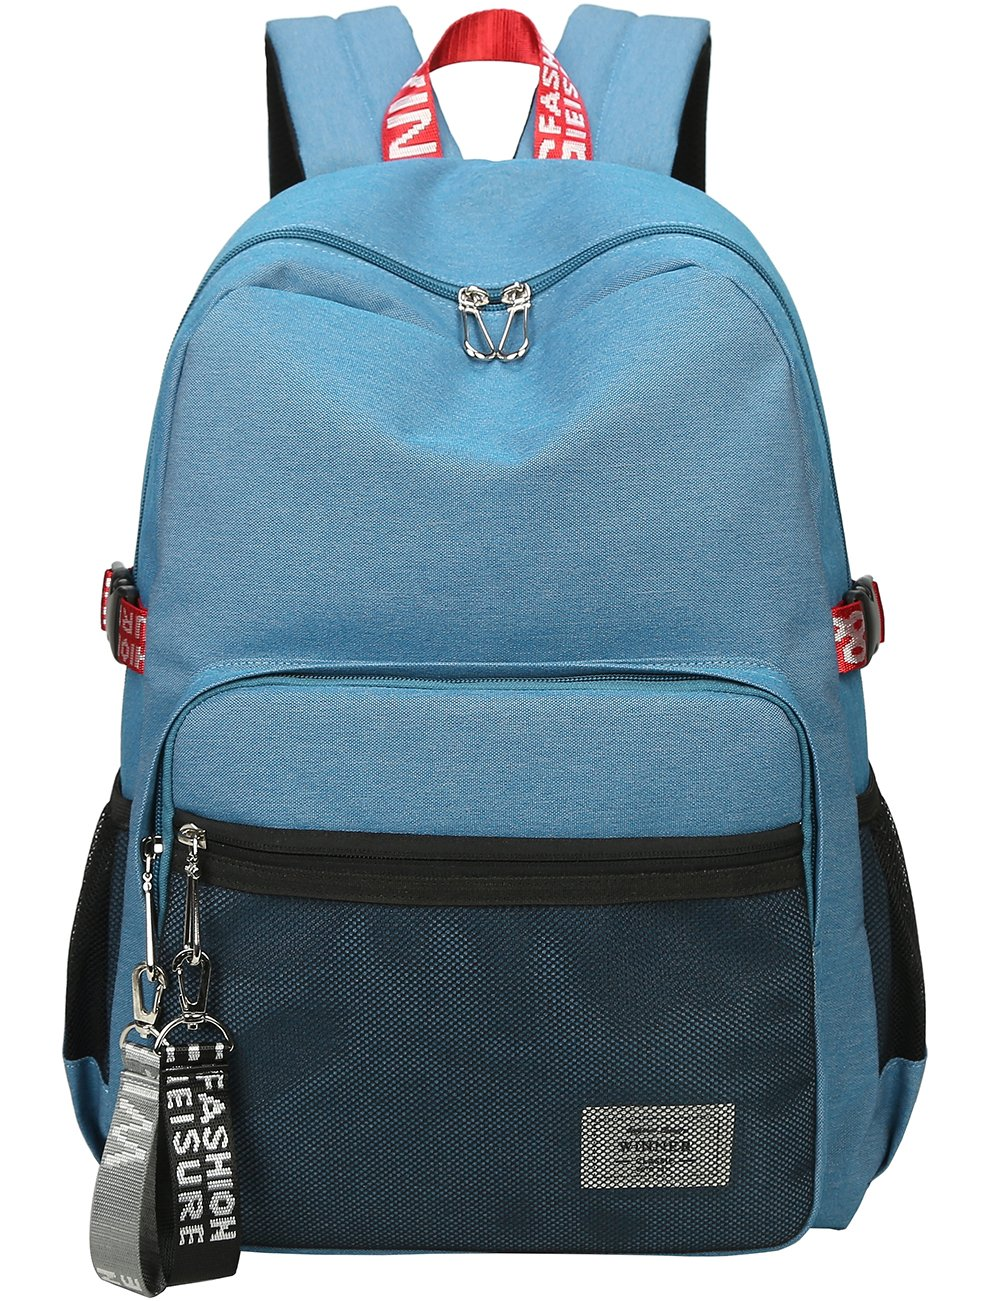 Casual Style Lightweight Backpack School Bag Travel Daypack Fruit Green